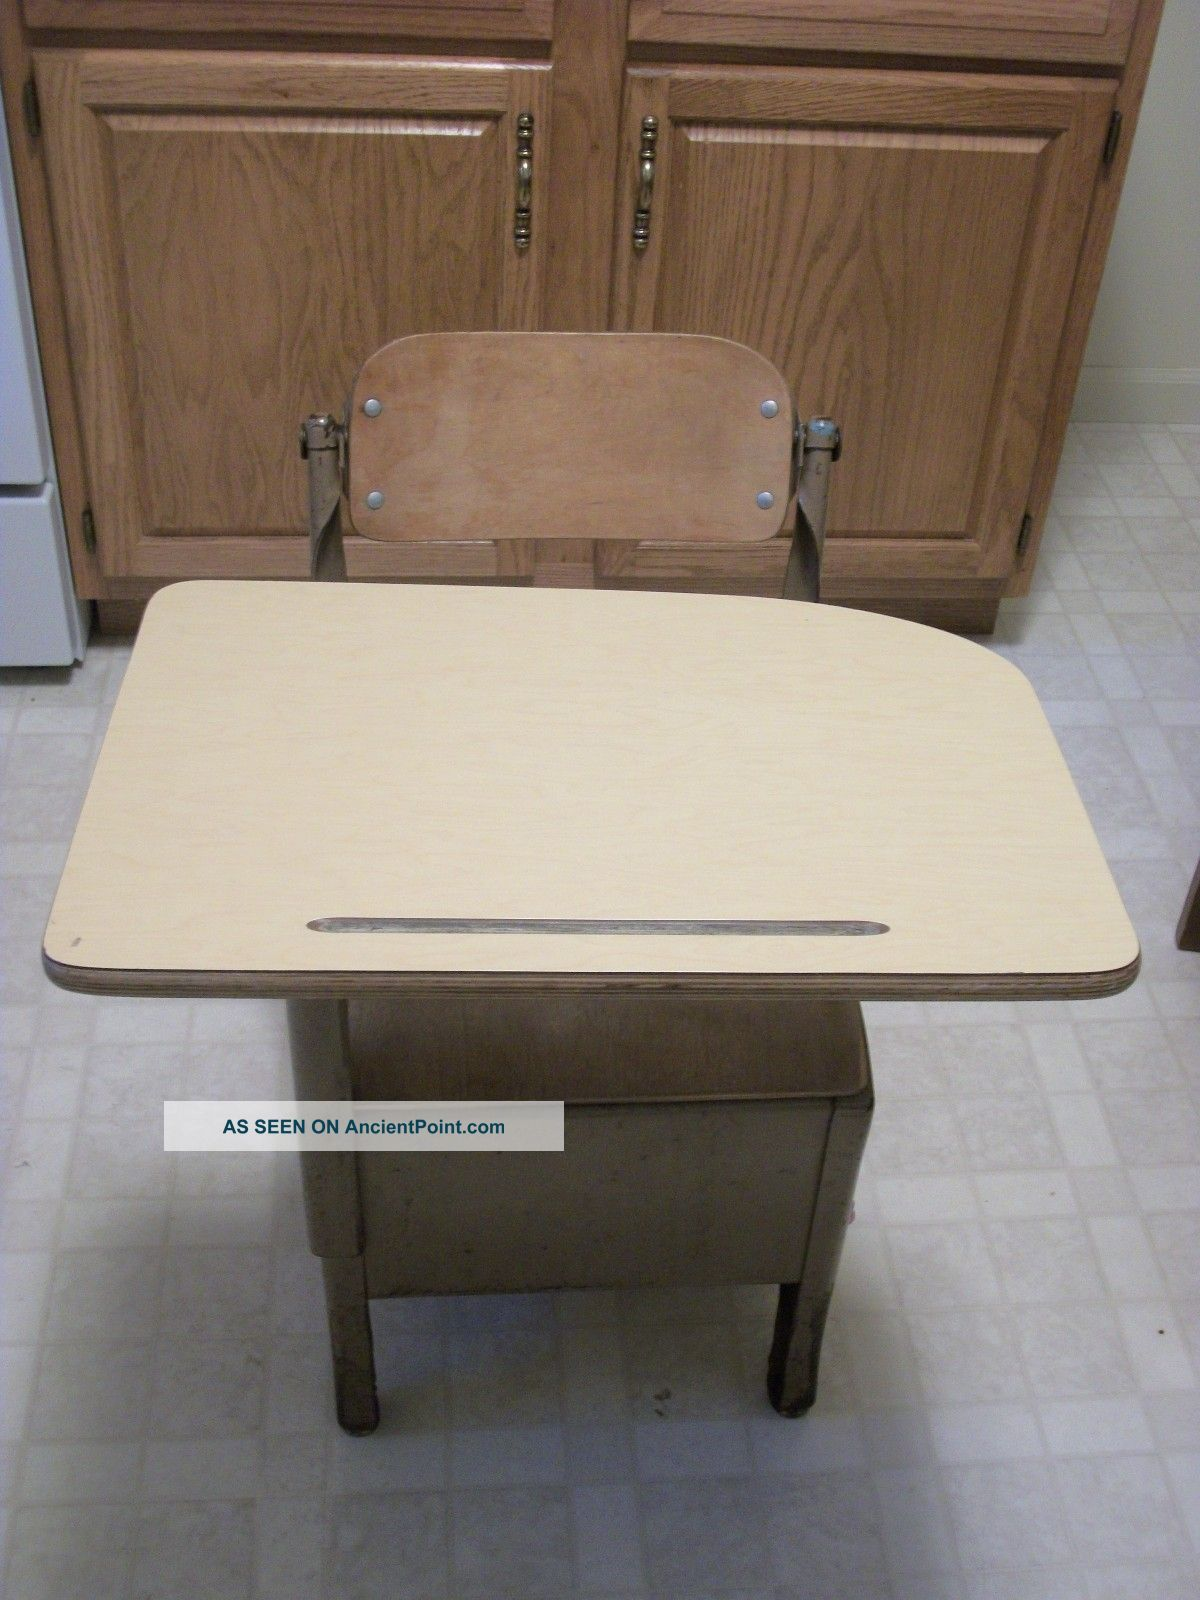 Vintage School Desk / Peabody Seating Company / North Manchester,  Indiana 1900-1950 photo